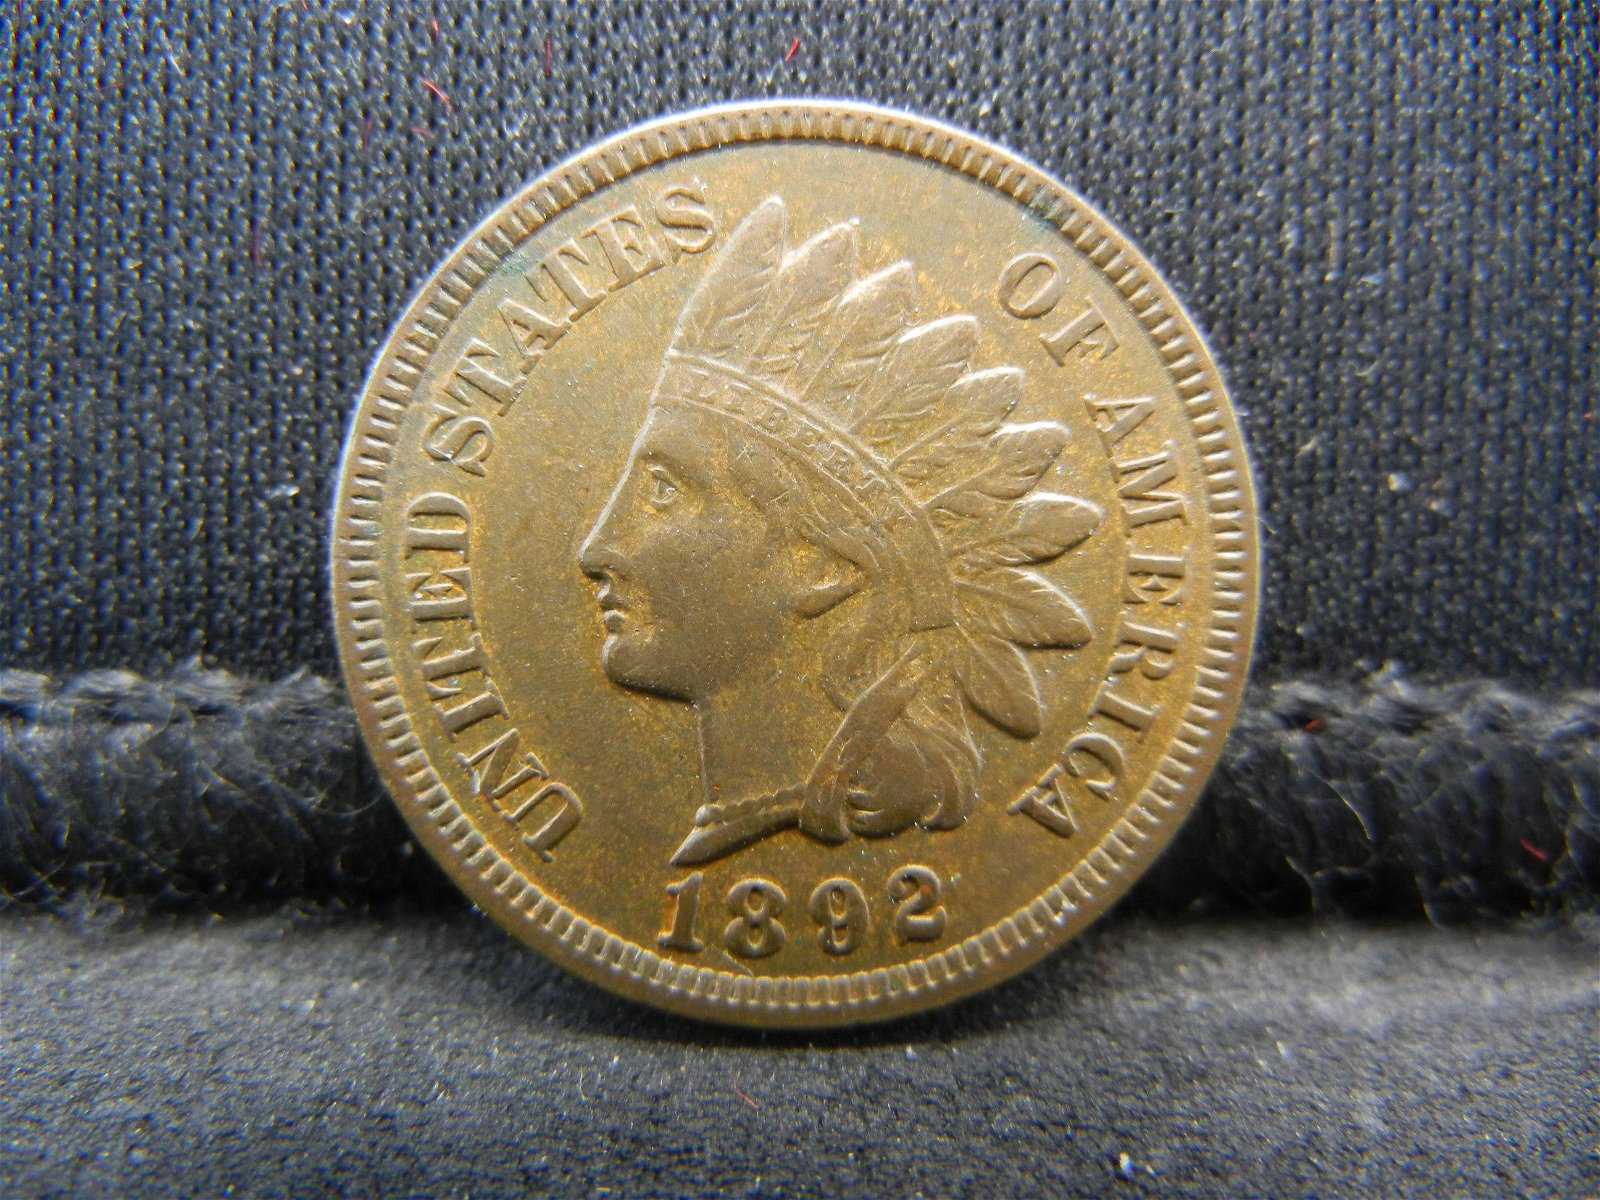 1892 United States Indian Head Penny Cent